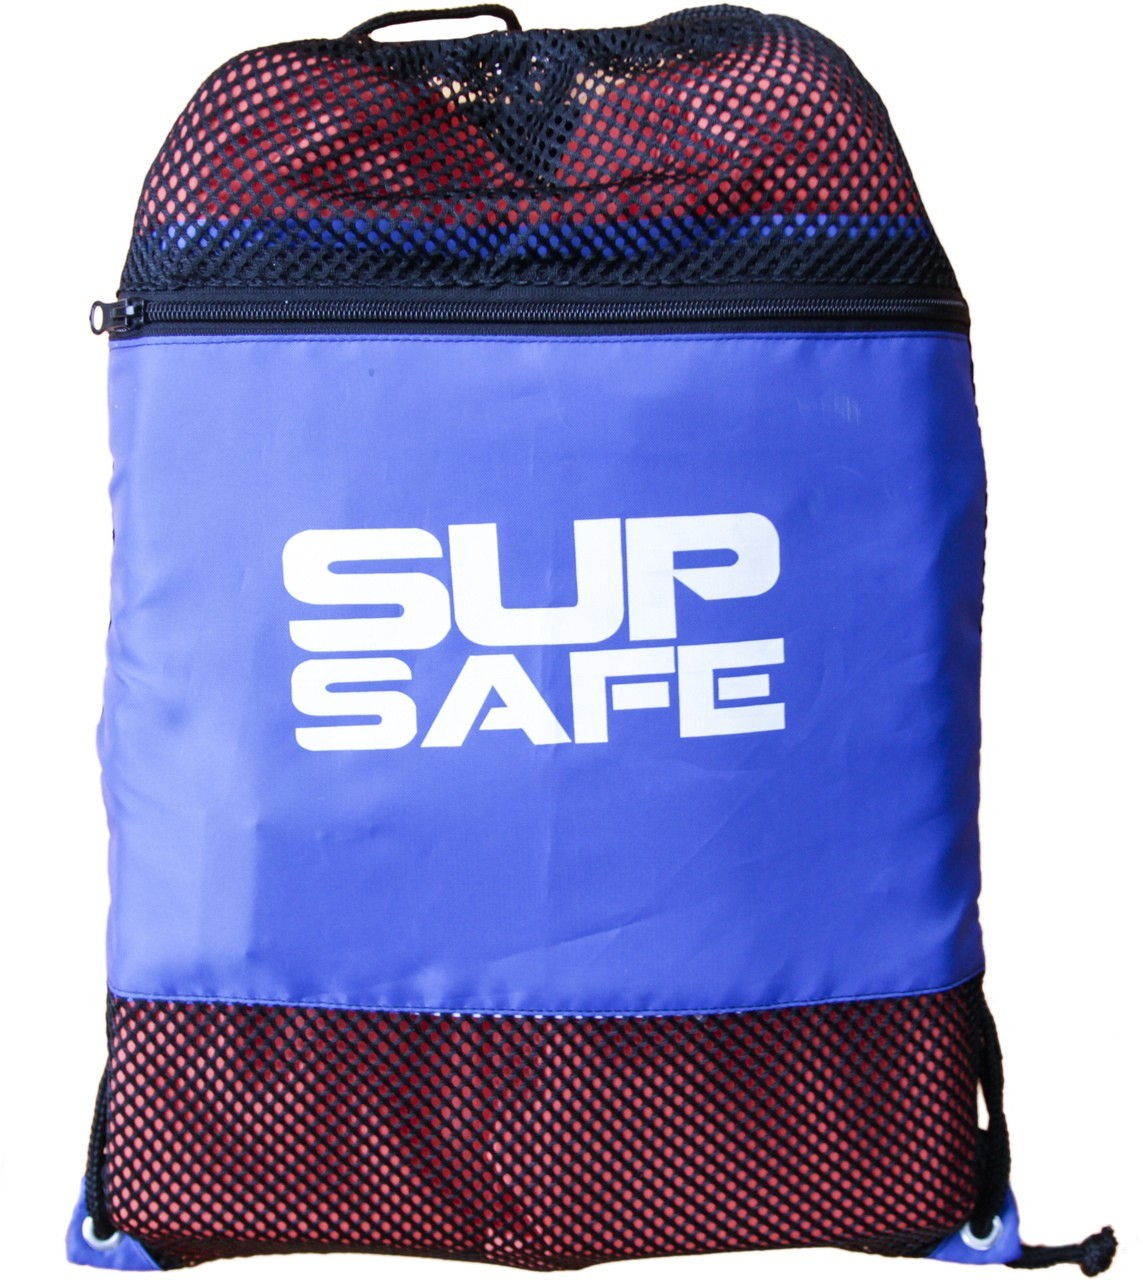 Sup Pfd Kit Life Jacket Whistle And Suction Cup Storage Bag